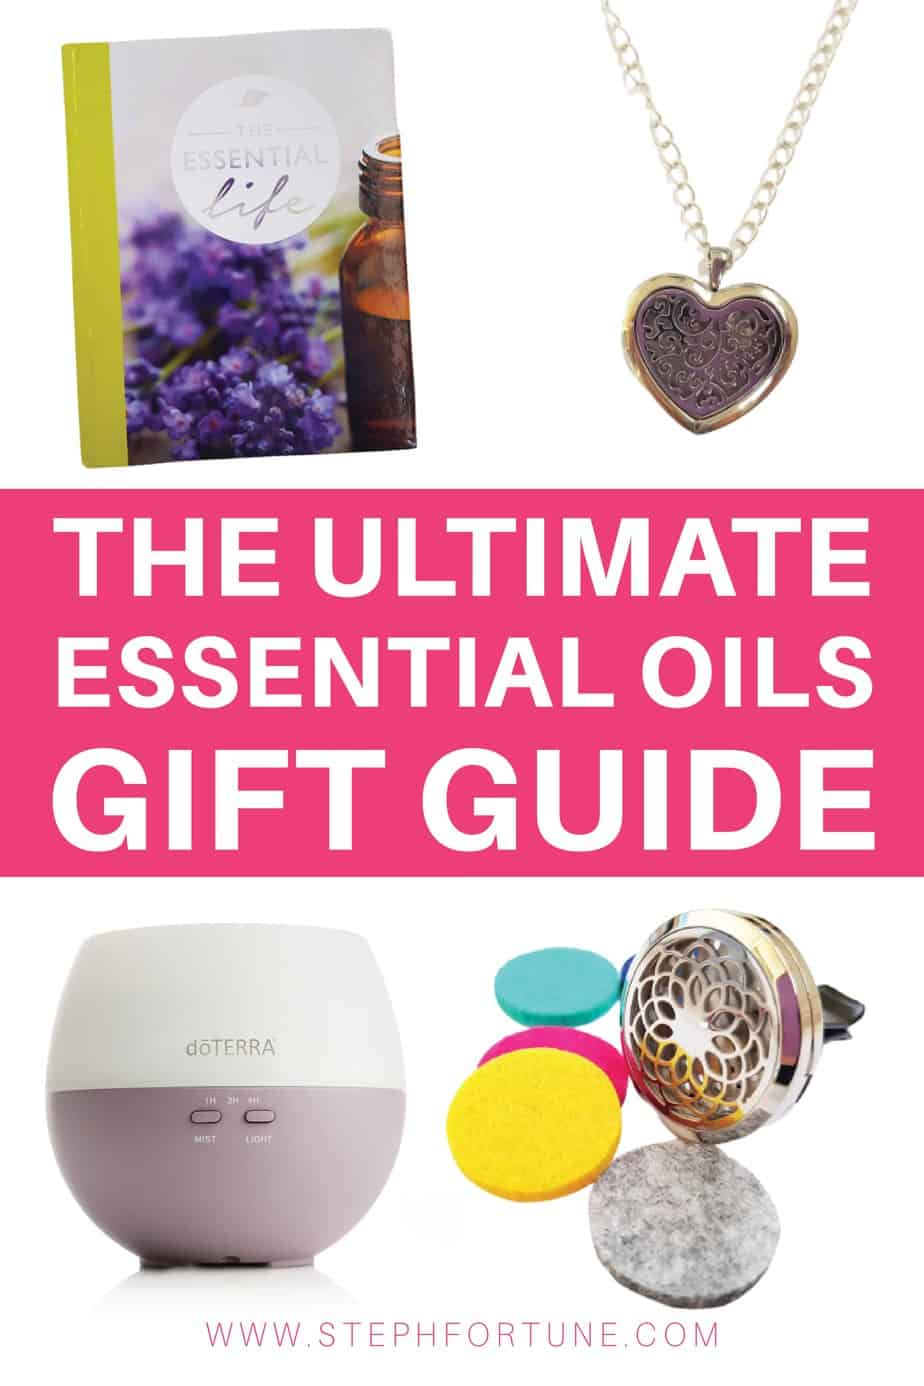 The Ultimate Essential Oils Gift Guide - Books, Jewellery, Tshirts, mugs and lots of other awesome ideas of gifts you can give to essential oil lovers